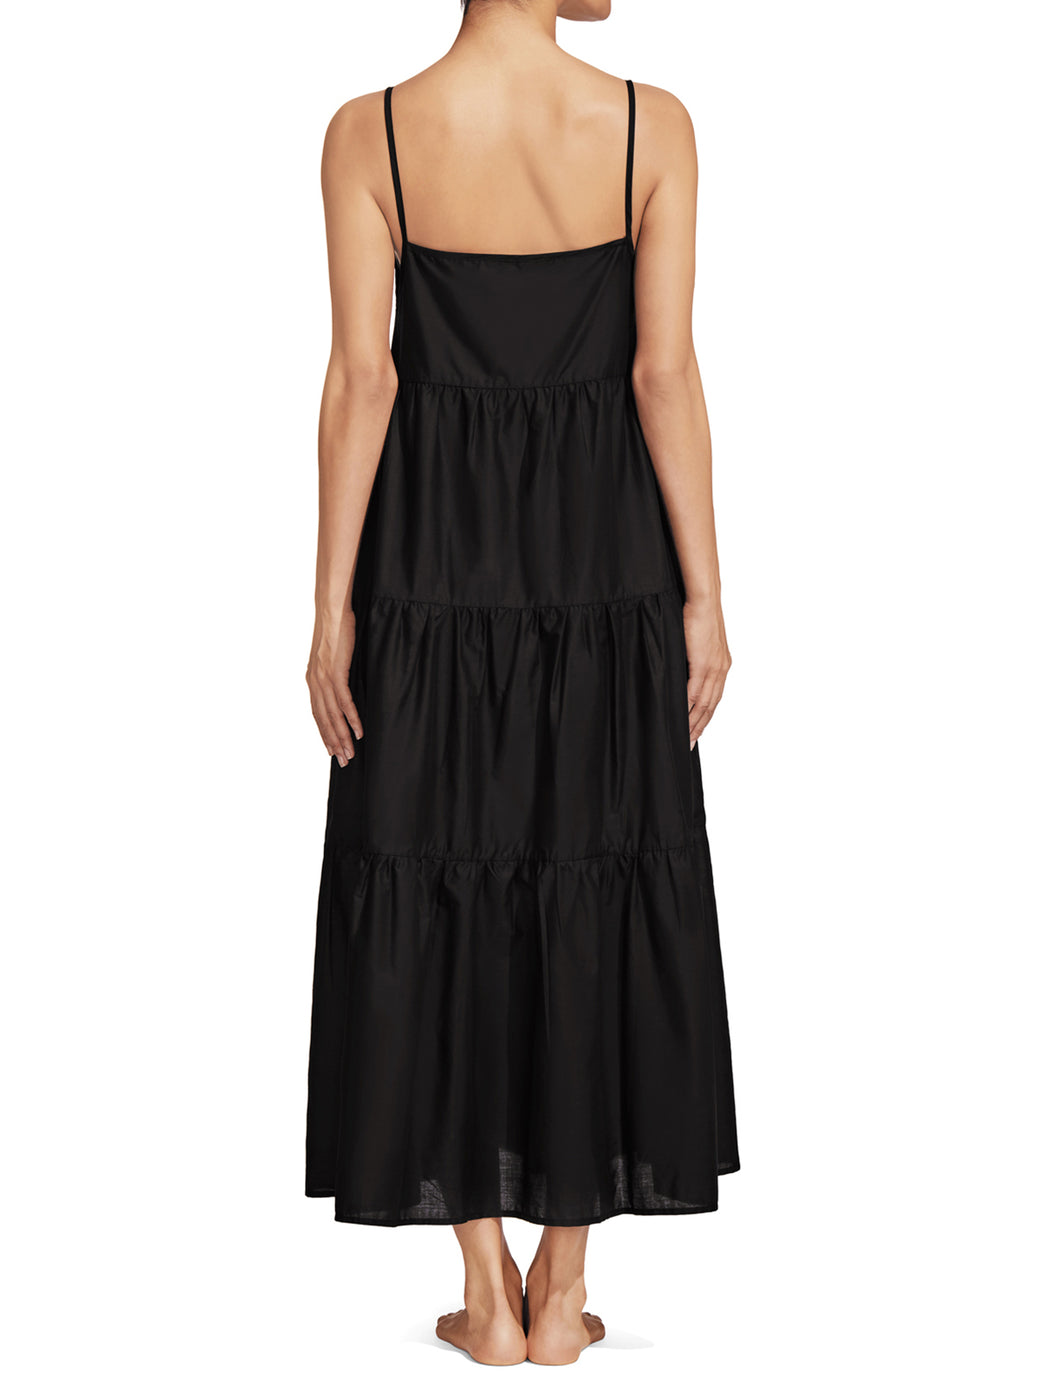 Matteau Black Tiered Sundress